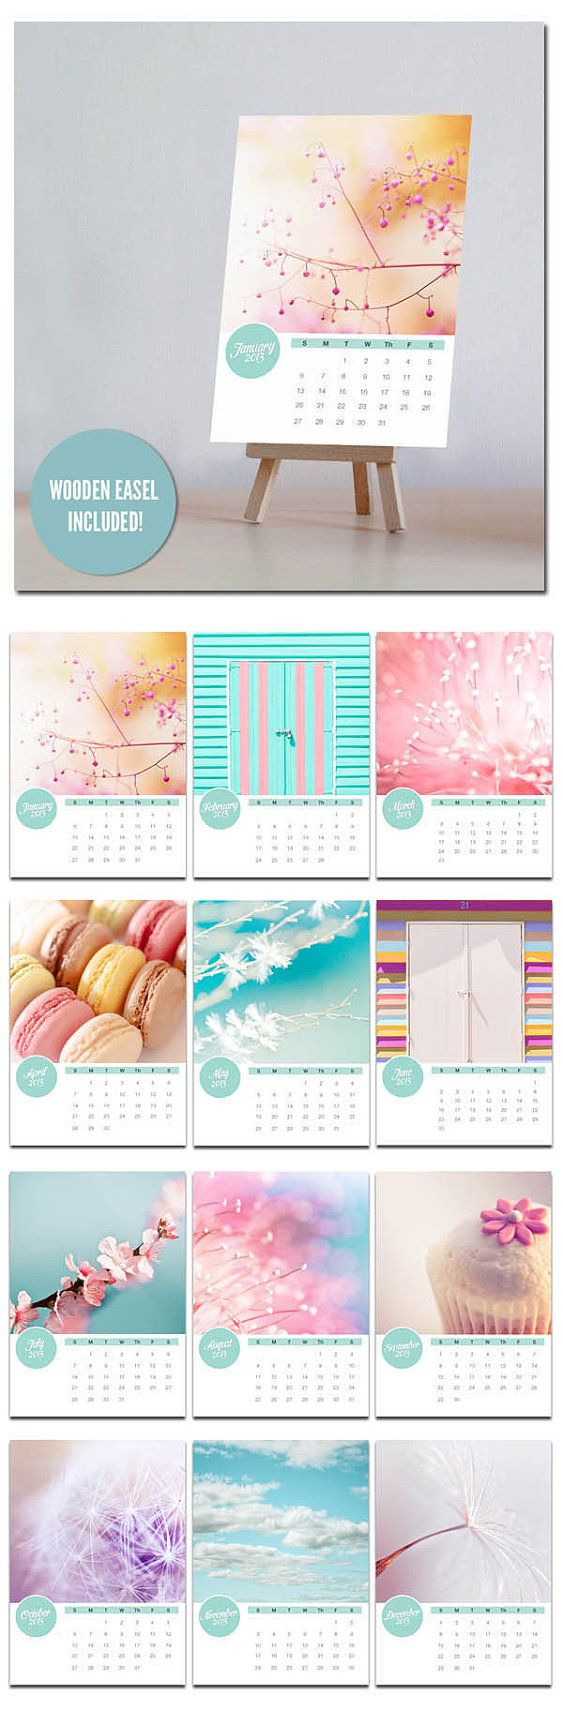 Photography calendar 2013  5x7 mini desk by mylittlepixels on Etsy, $22.00